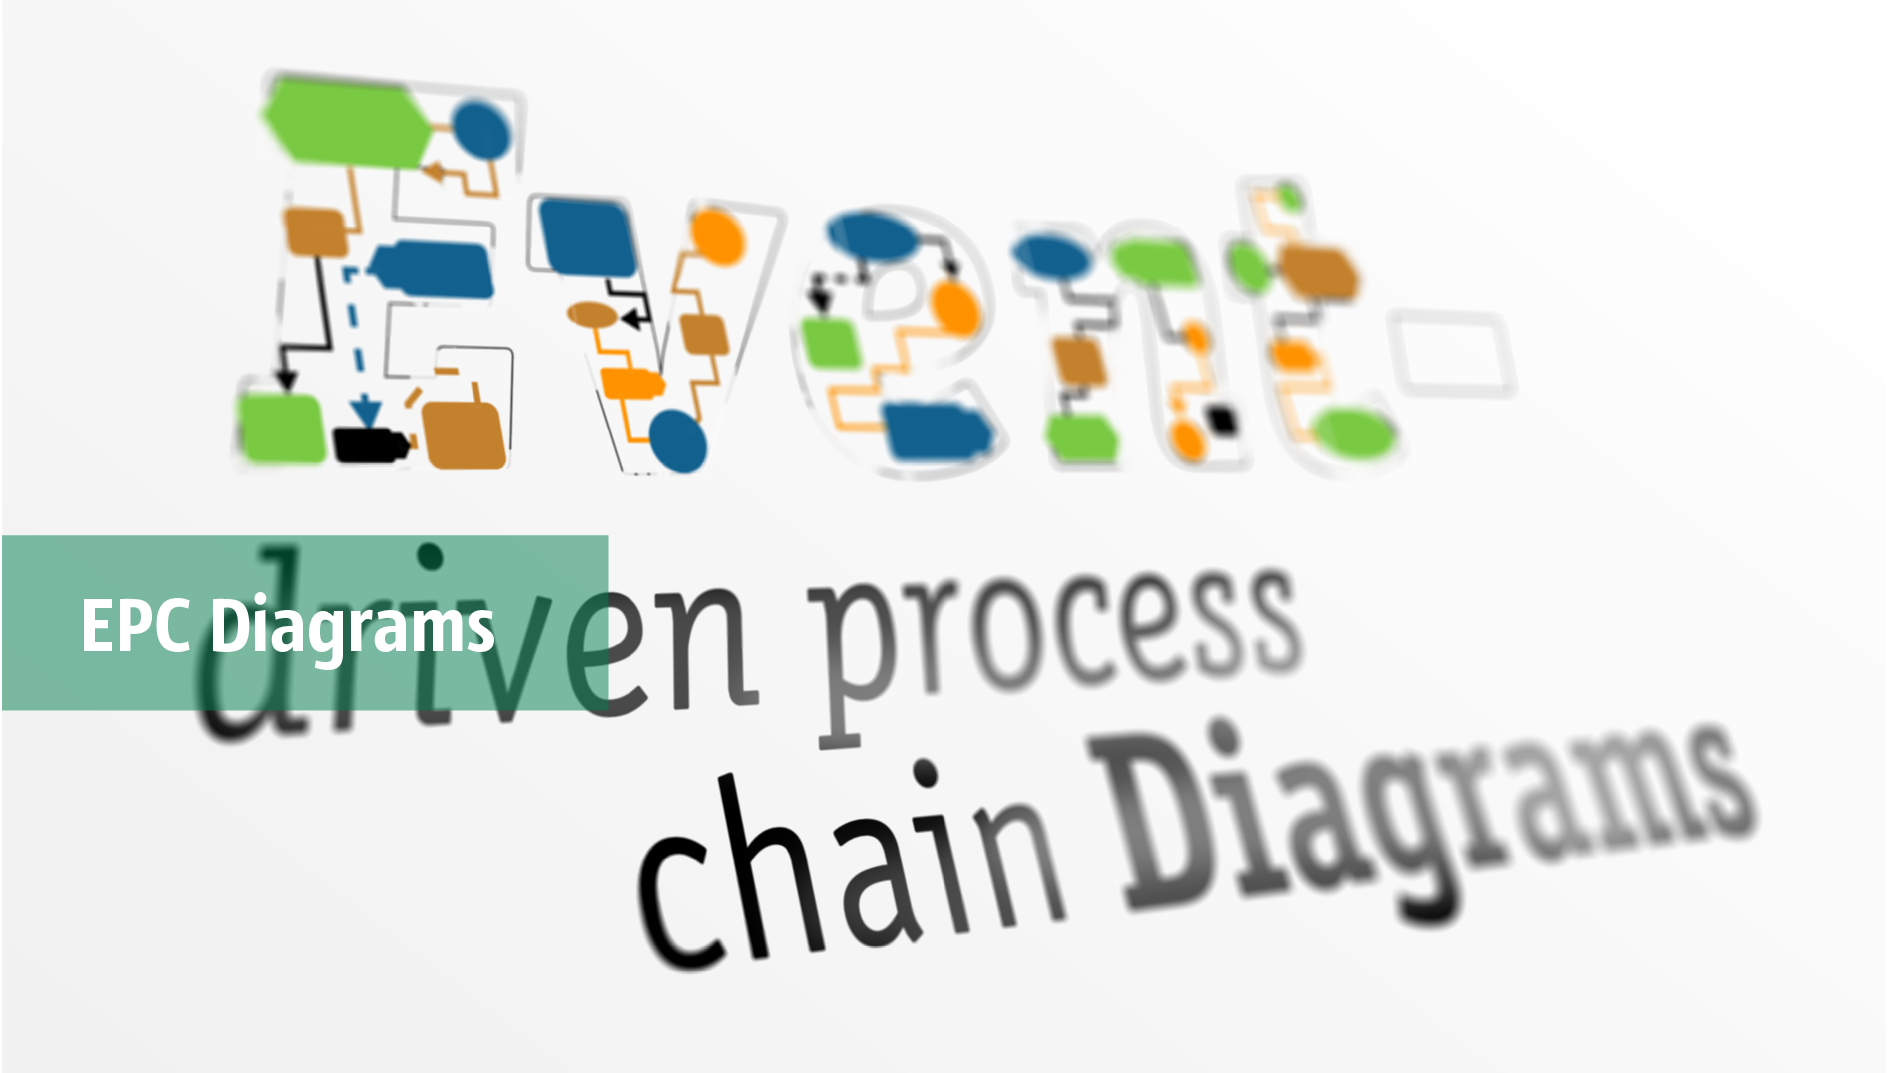 event-driven process chain diagram, EPC diagram, process chain flowchart